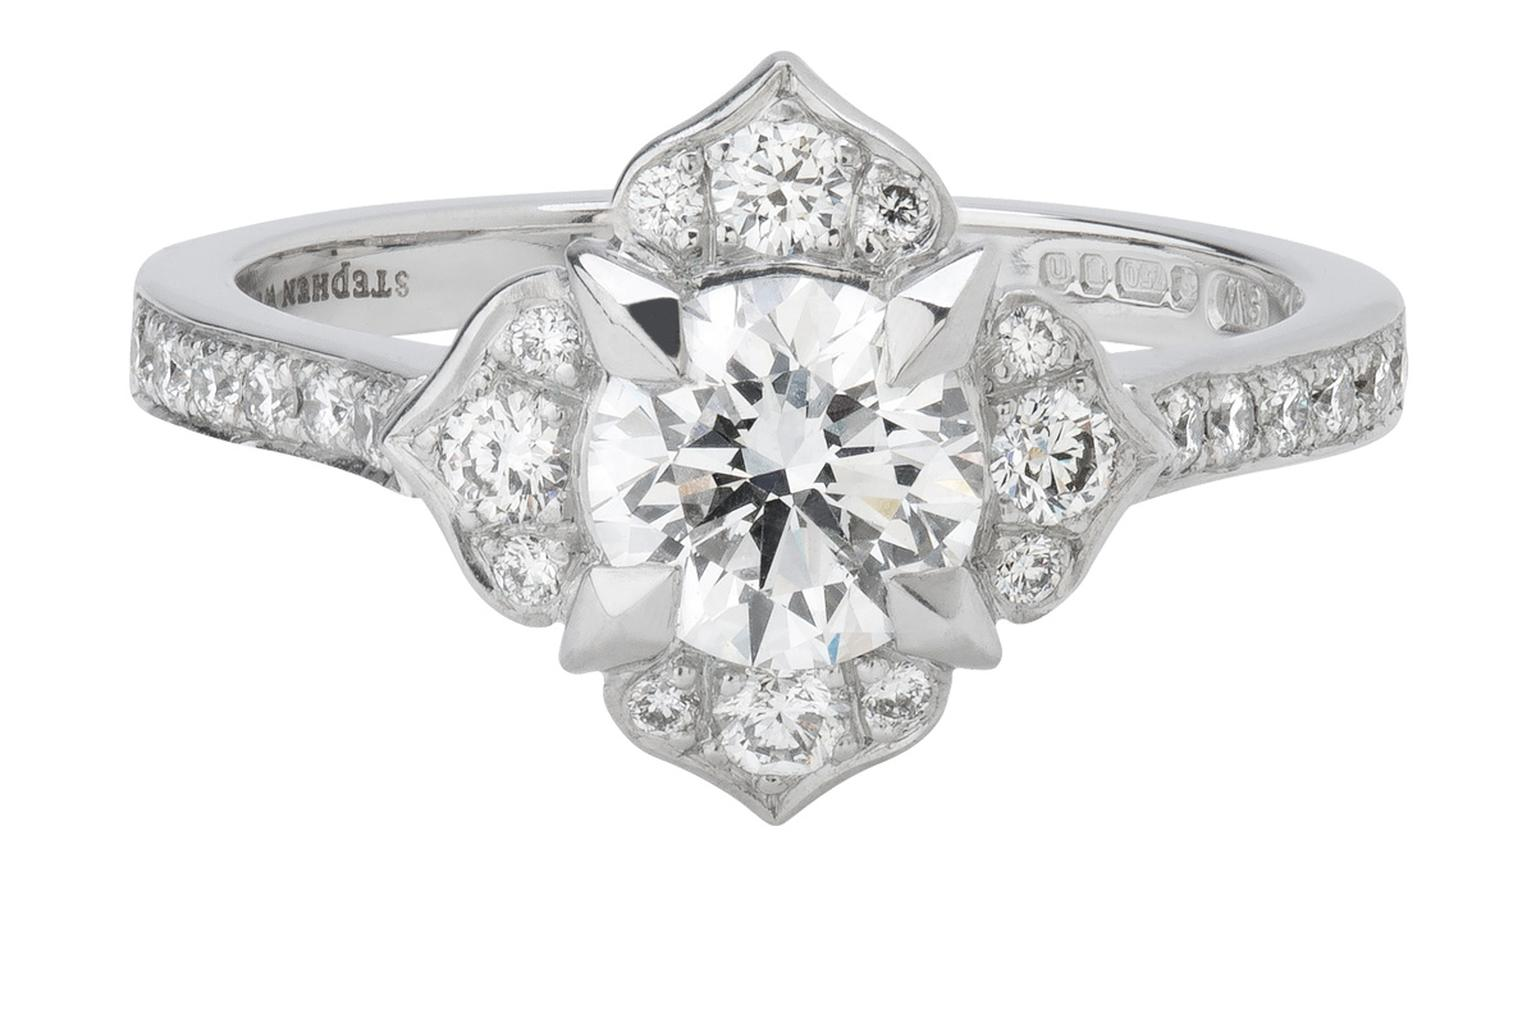 Stephen_Webster_Bridal_Collection_Heritage_Fleur_Engagement_Ring_20140123_Zoom